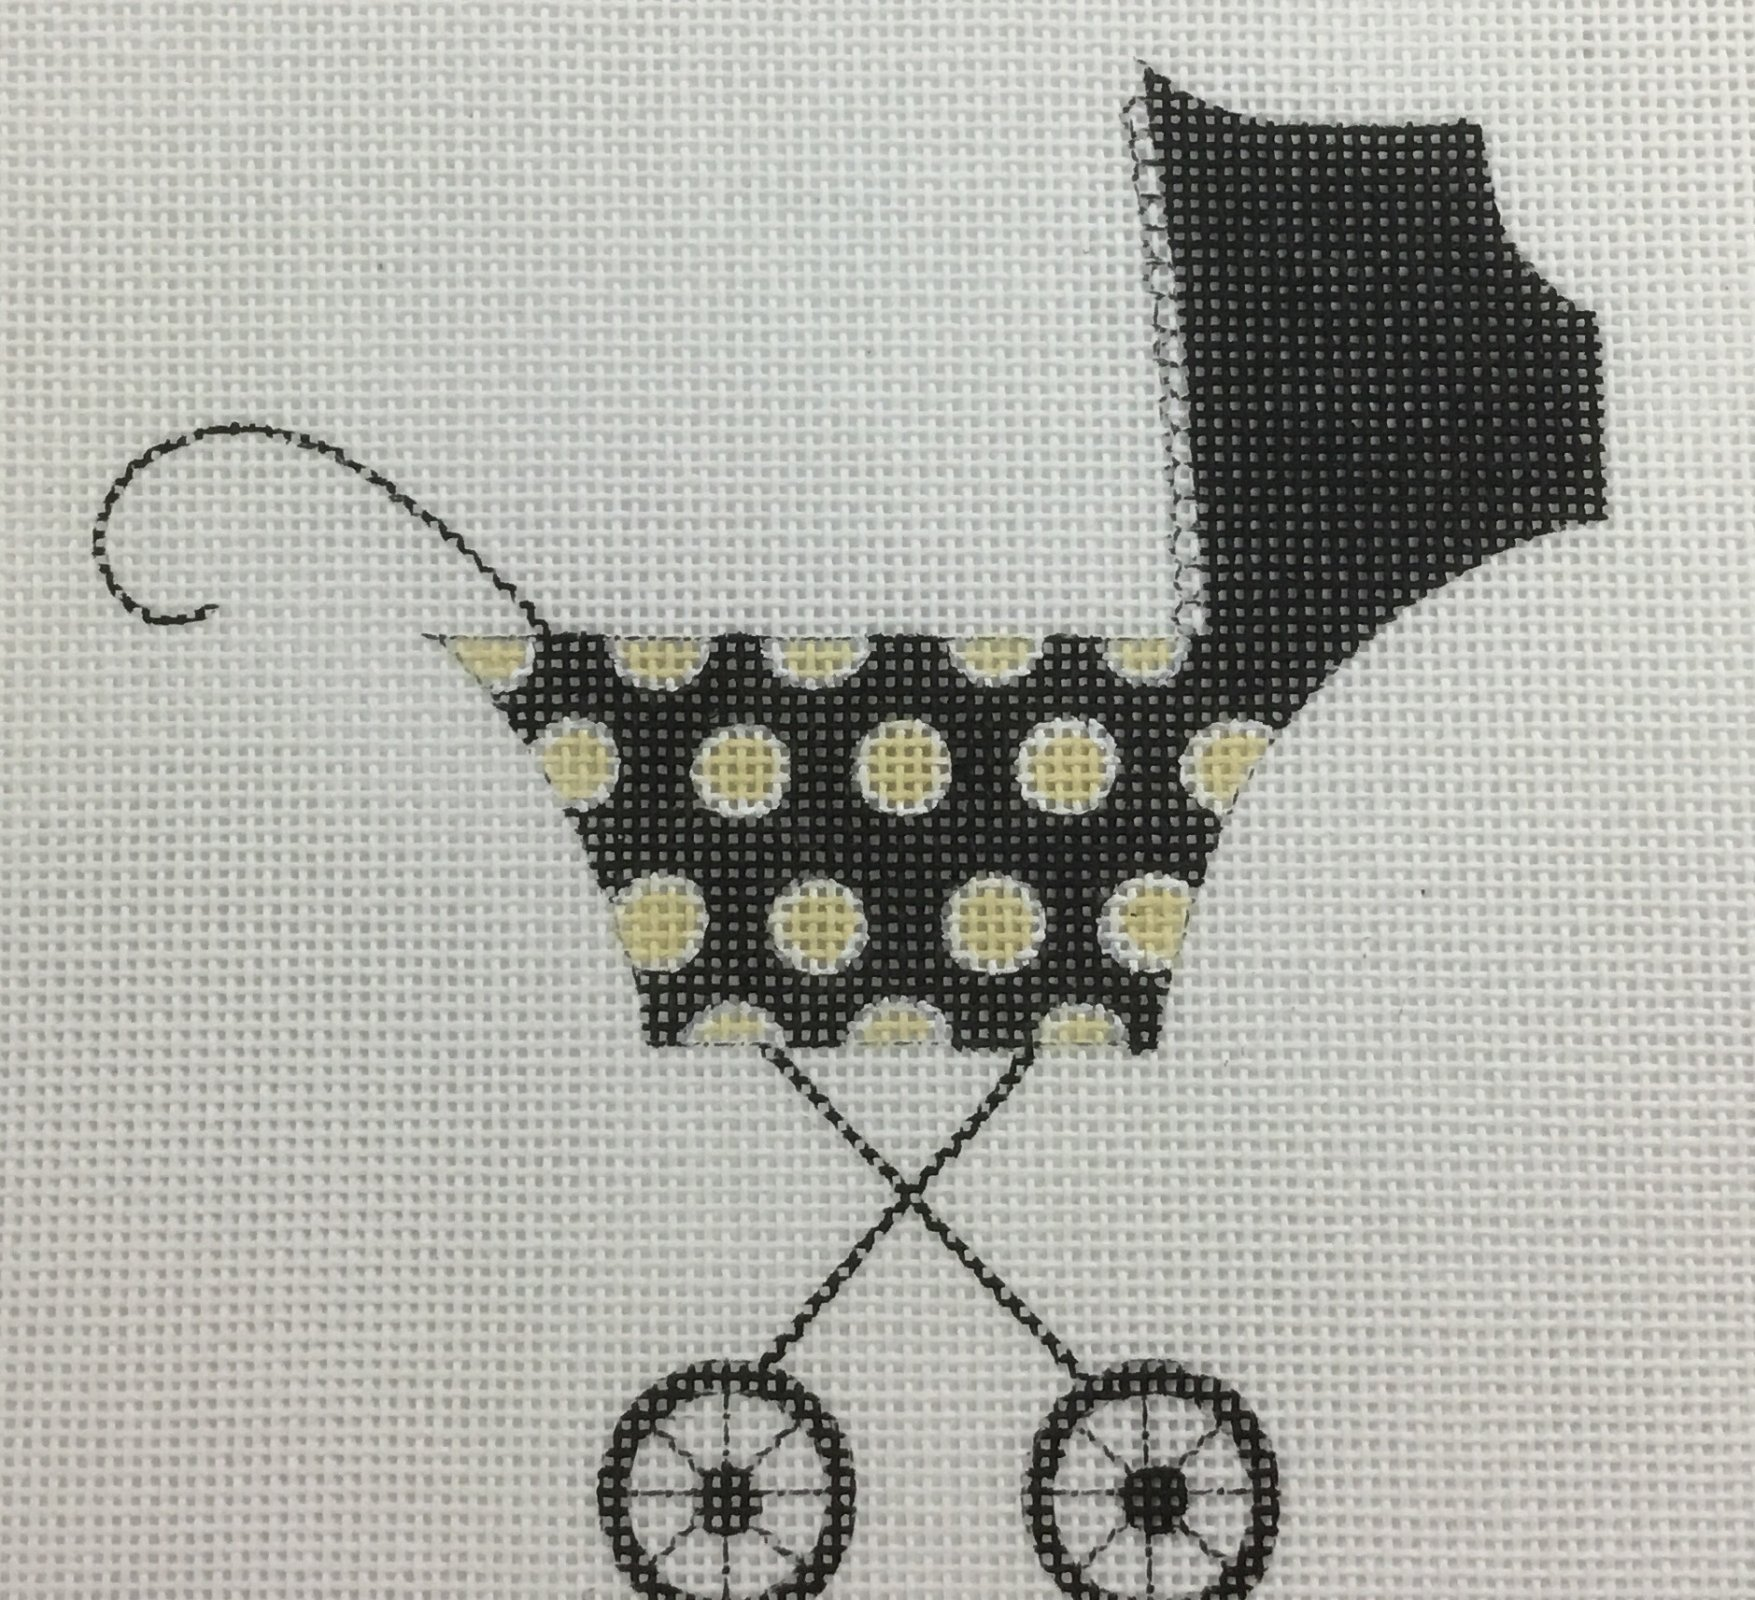 Baby Buggy, 18ct., 5 x 5